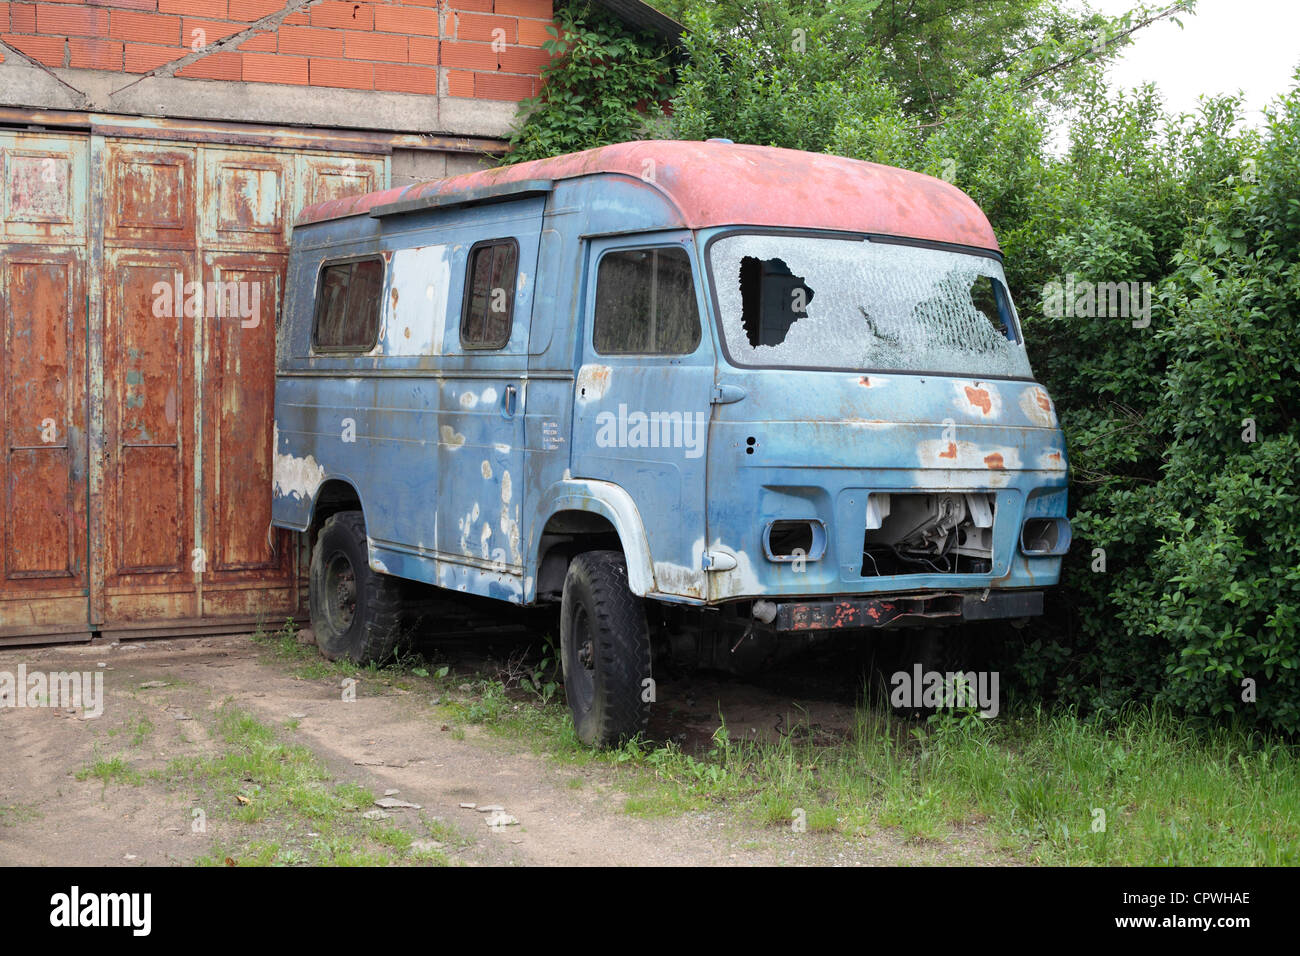 Old Renault Saviem Van - derelict and abandoned. - Stock Image